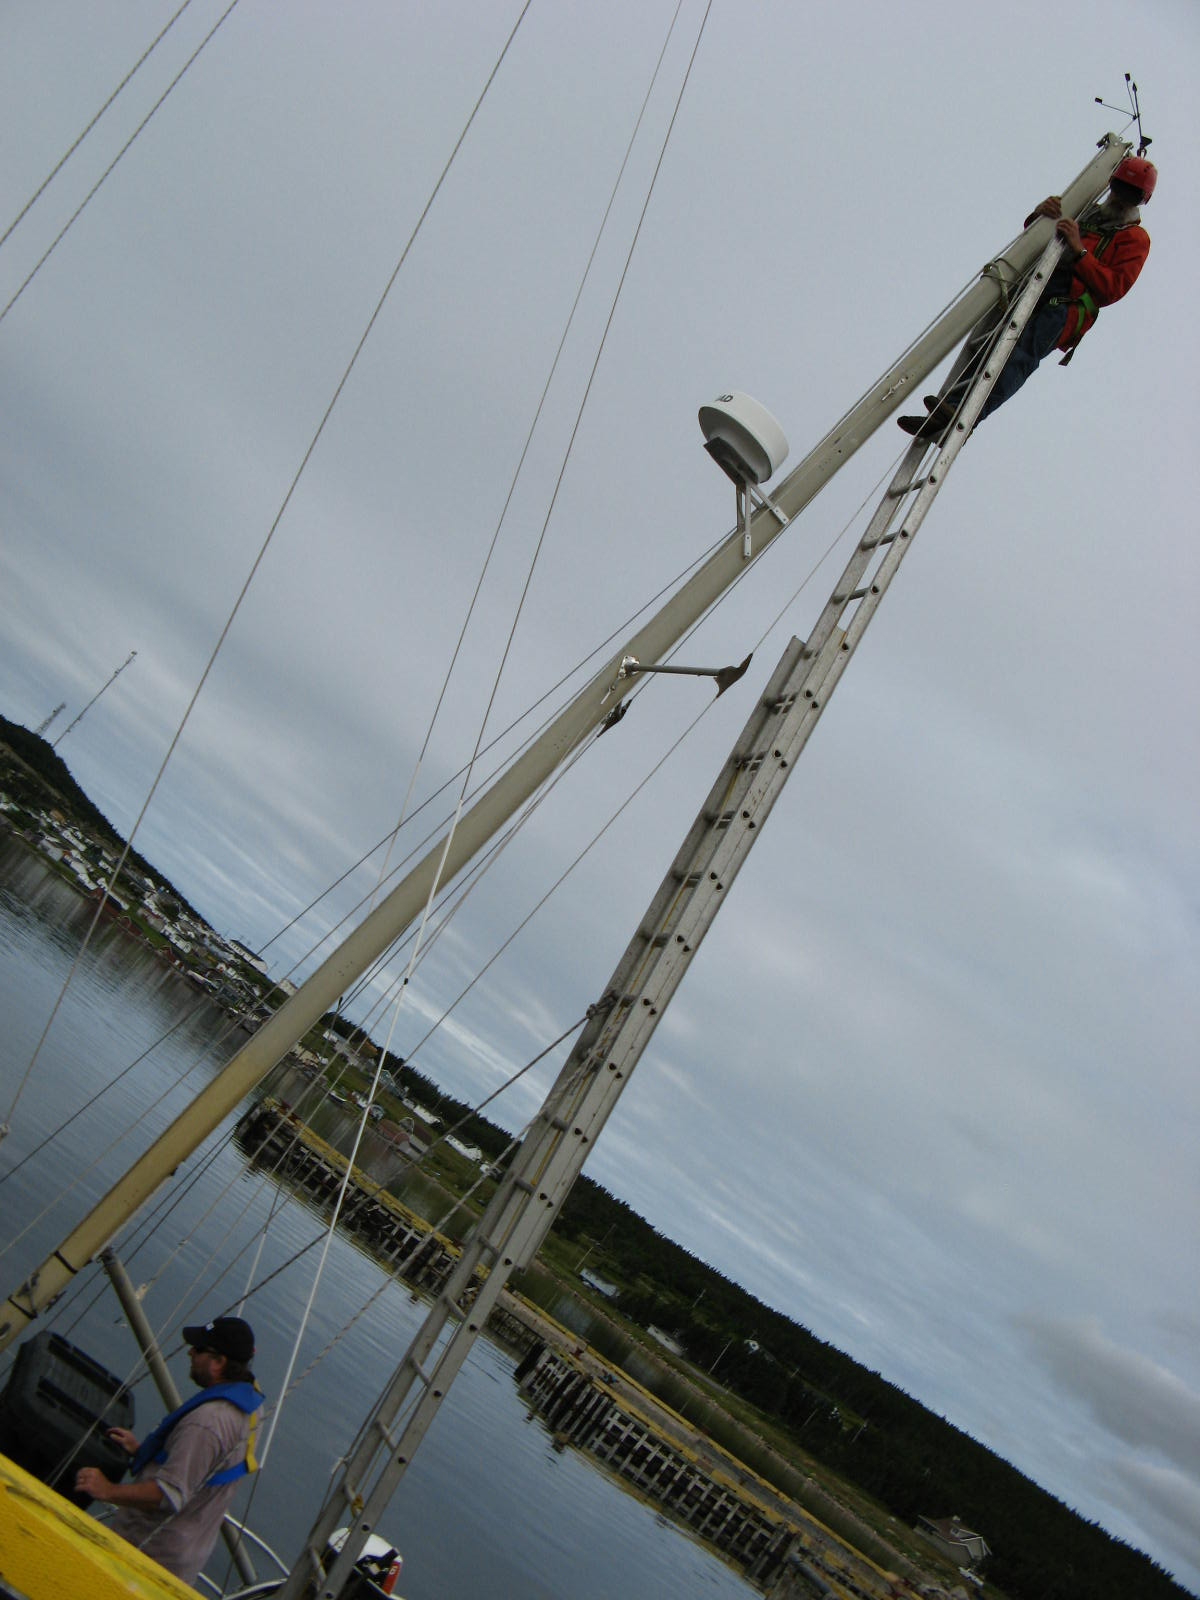 Click image for larger version  Name:Using Ladder to climb mizzen mast - fr side - 20110813.JPG Views:75 Size:172.3 KB ID:57739